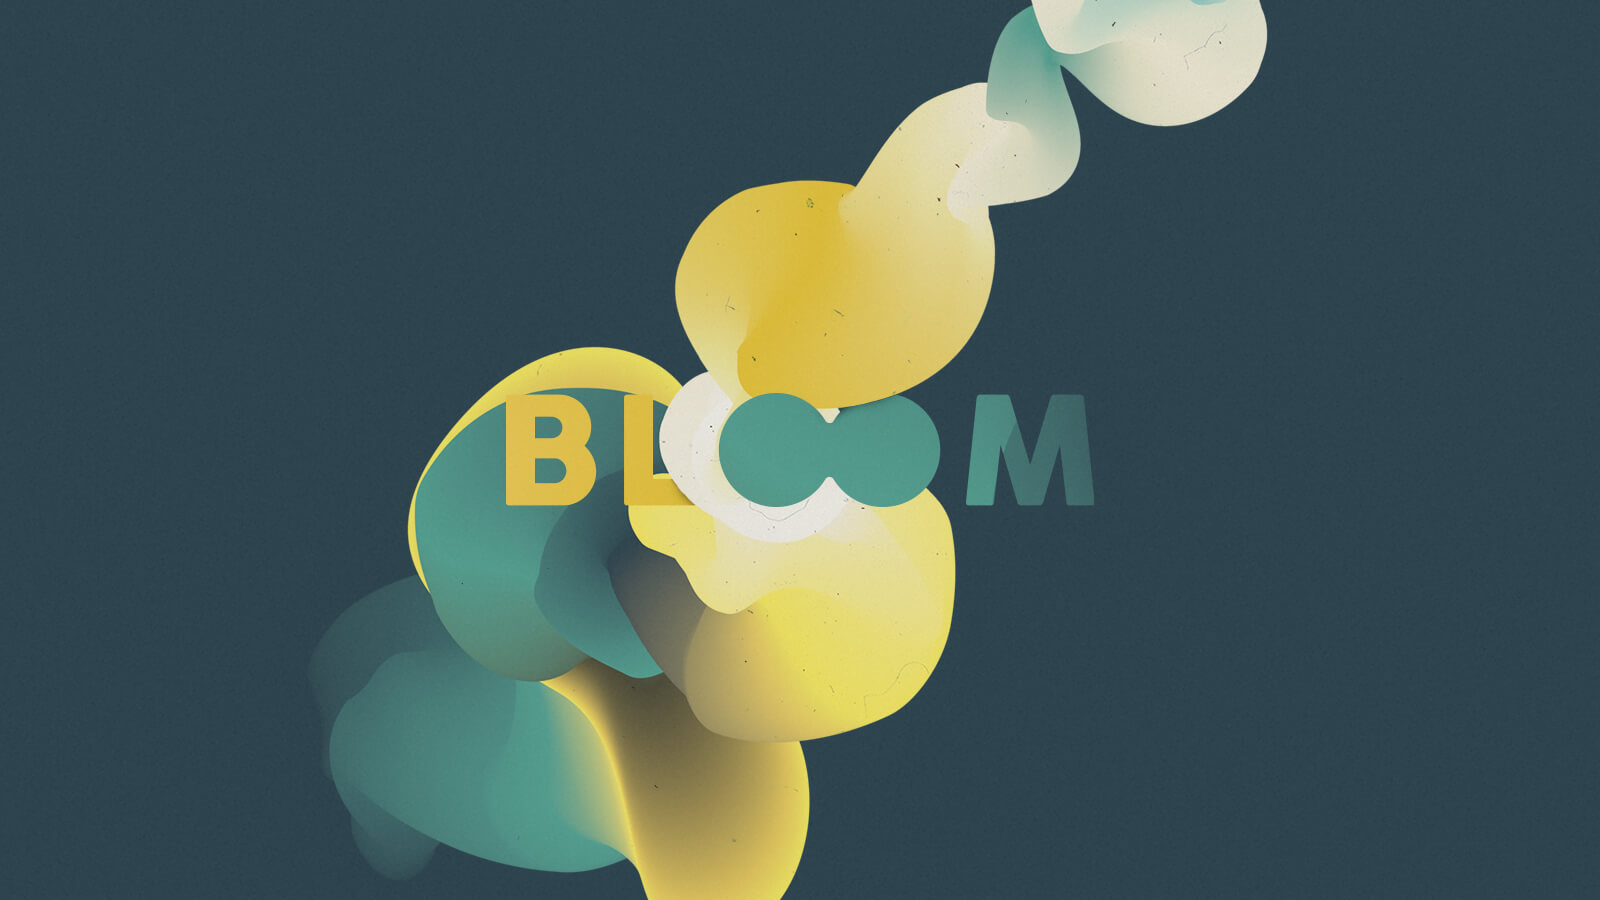 Bloom_v2_Keynote_9